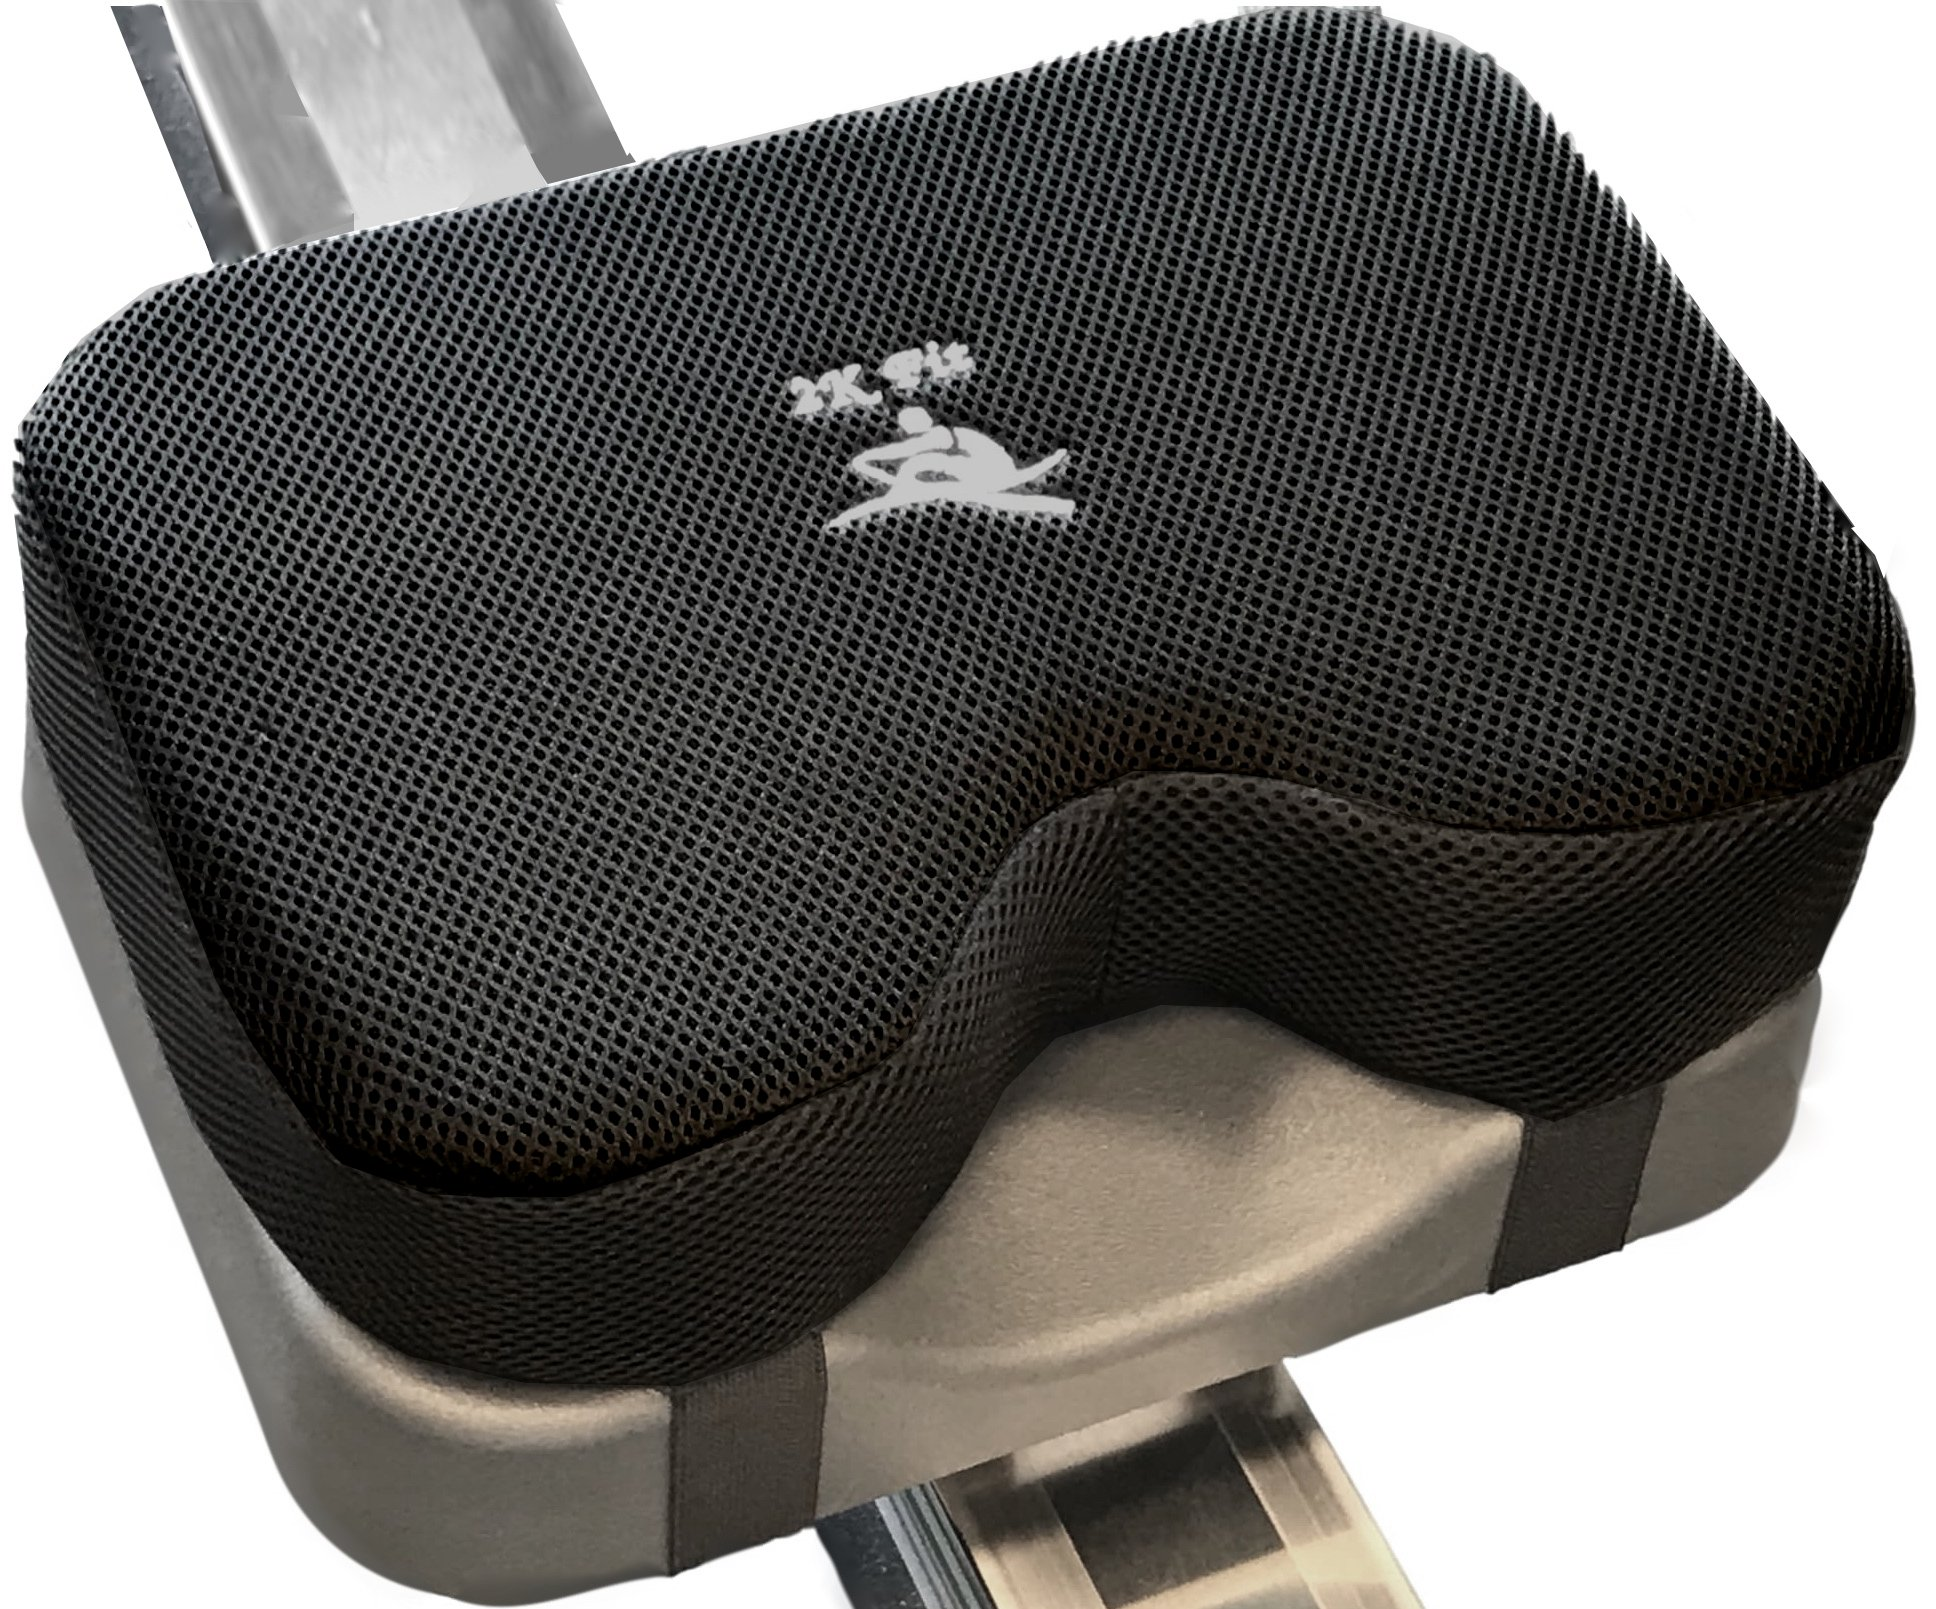 Rowing Machine Seat Cushion (Model 2) That Perfectly fits Concept 2 with Thicker Memory Foam, Washable Cover, and Straps- Also Works Great with Exercise Recumbent Stationary Bike by 2K Fit